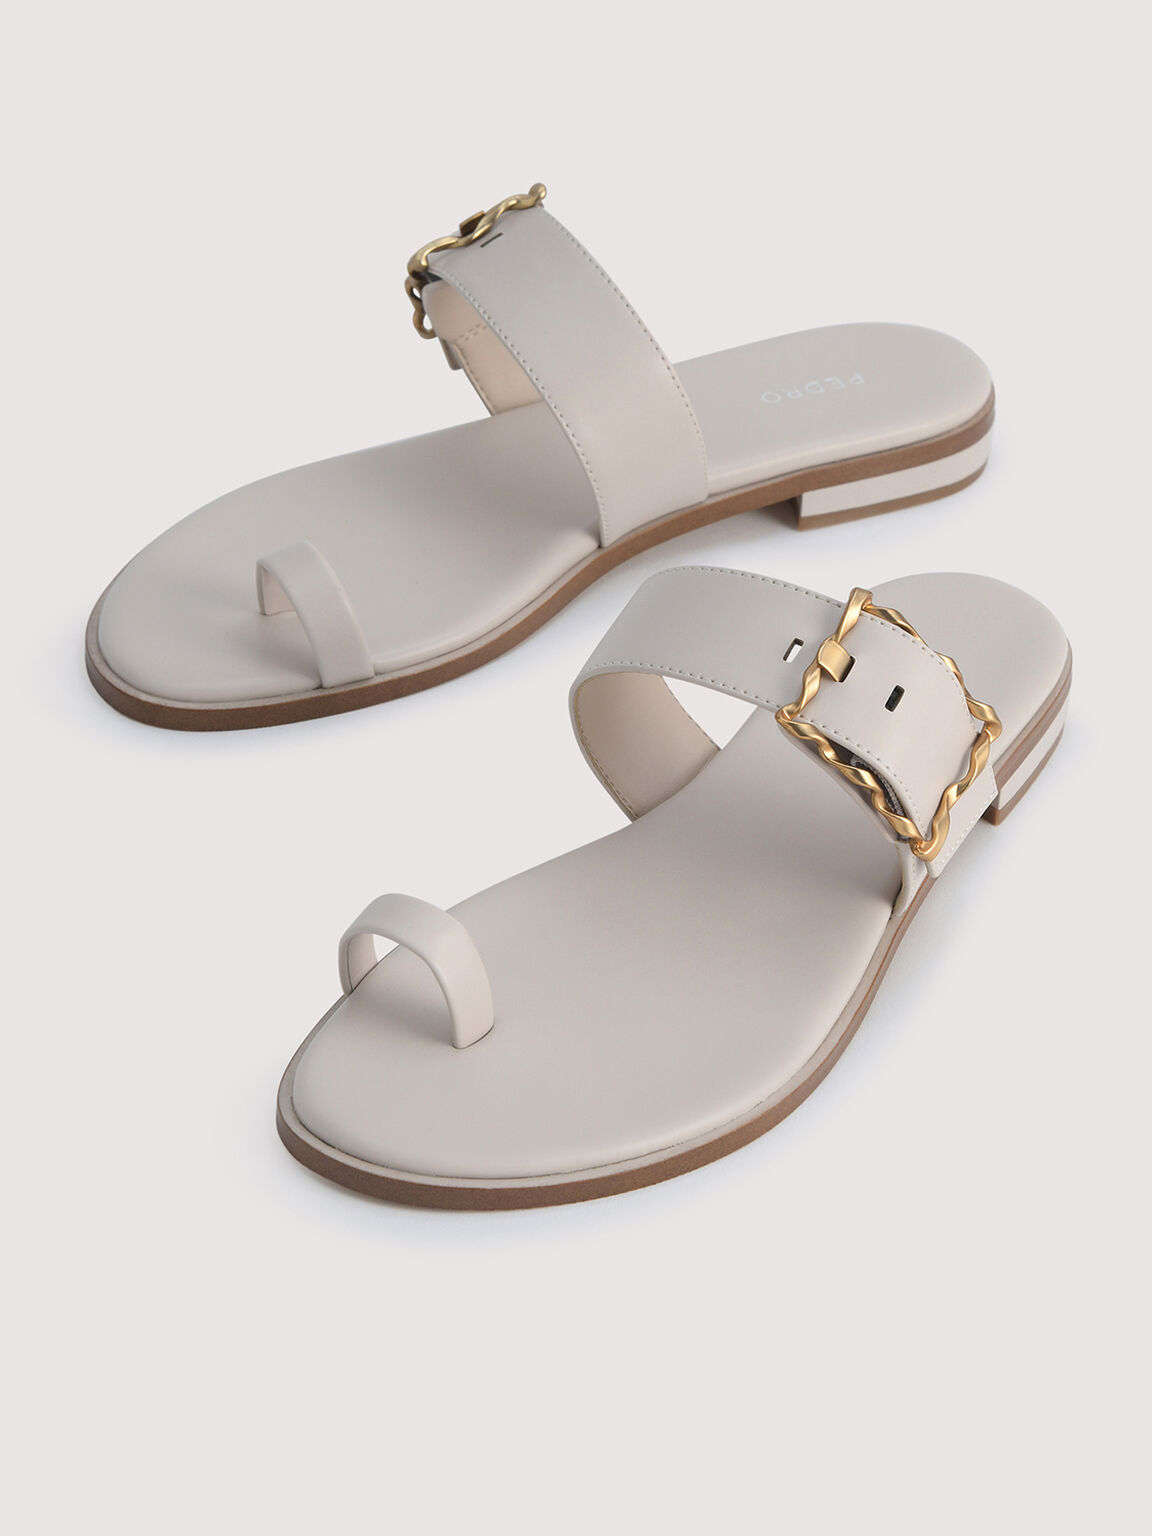 Toe Loop Sandals with Gold Buckle, Cream, hi-res